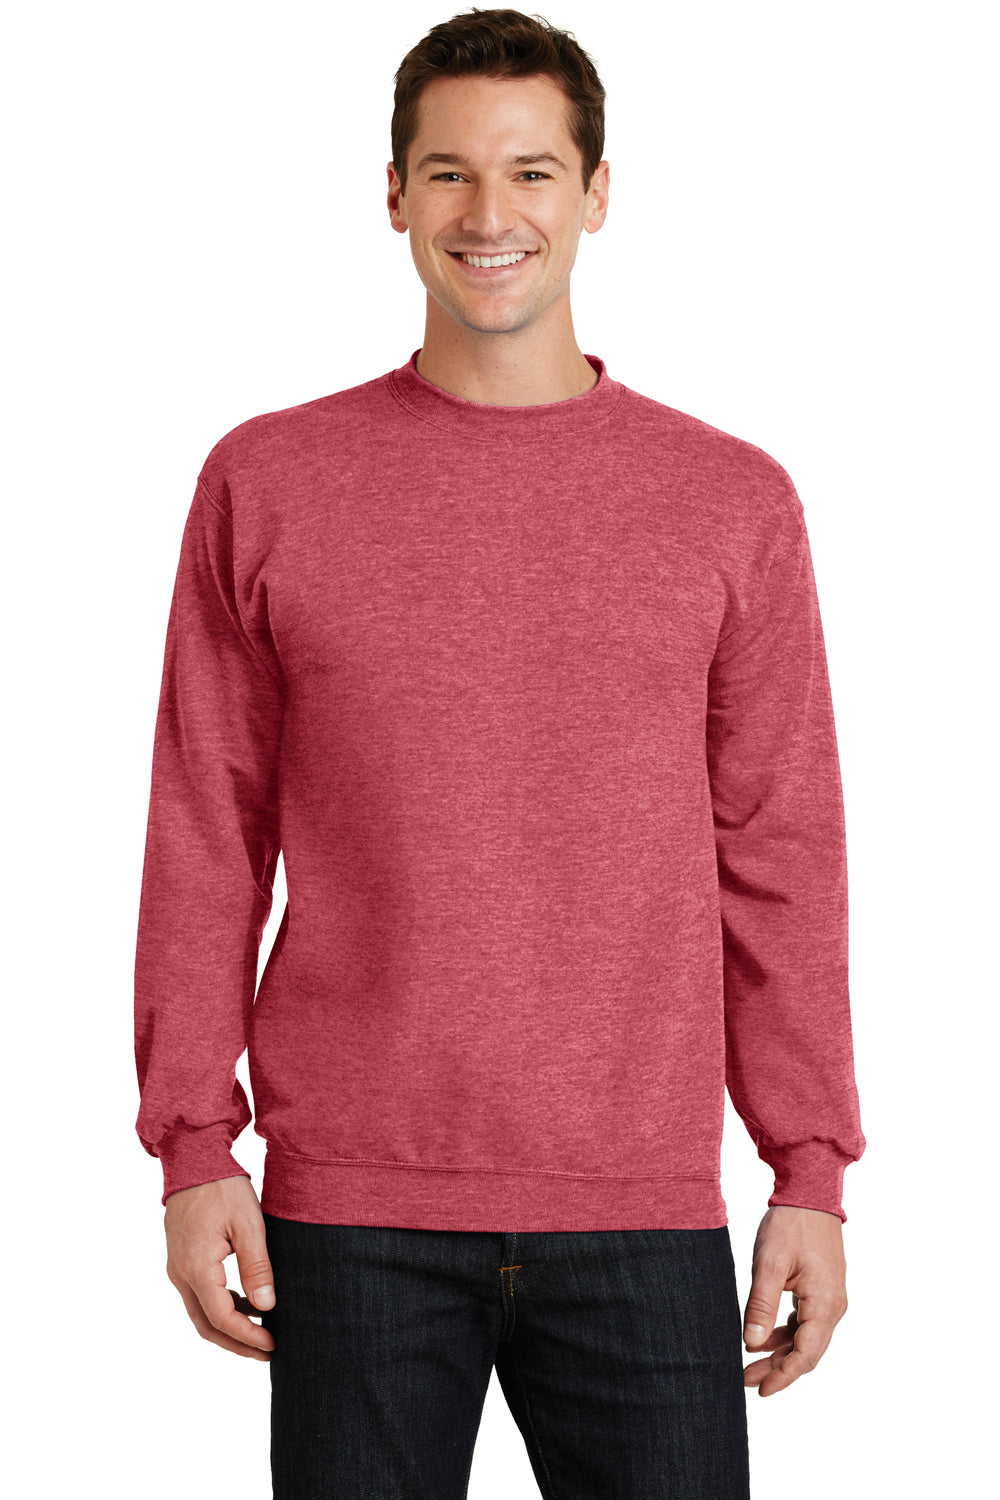 Port & Company PC78 Mens Core Fleece Crewneck Sweatshirt Heather Red Front